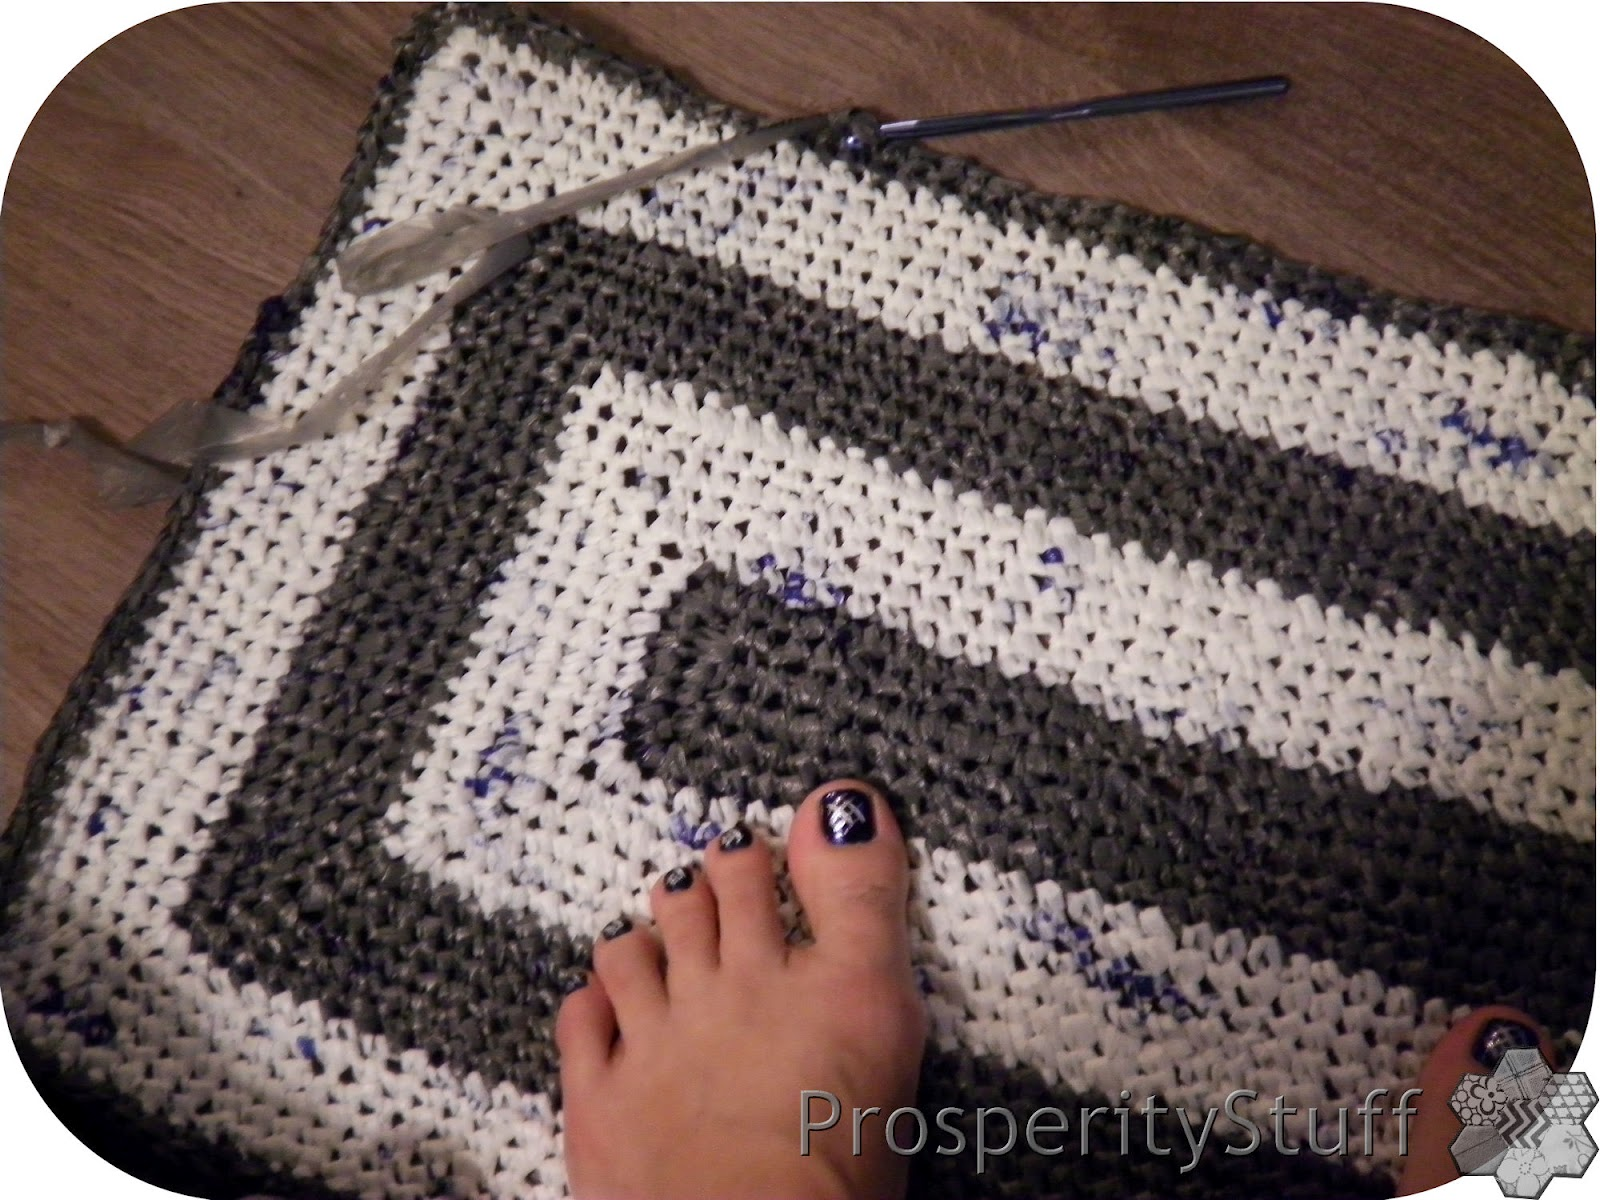 Plarn crochet rug - made from gray and white Wal-mart bags